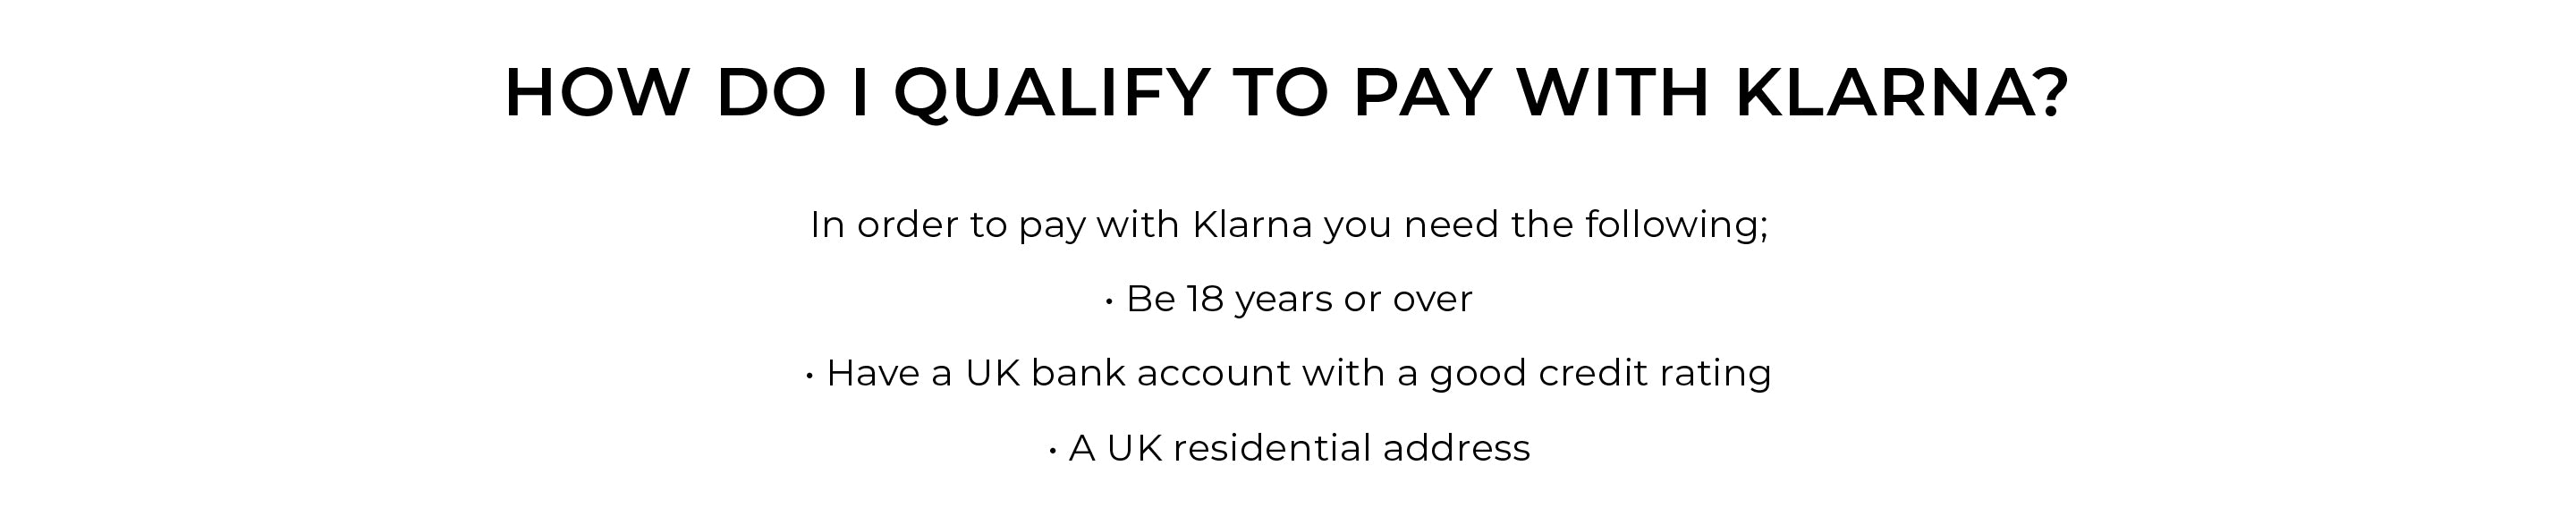 How Do I Qualify To Pay With Klarna?